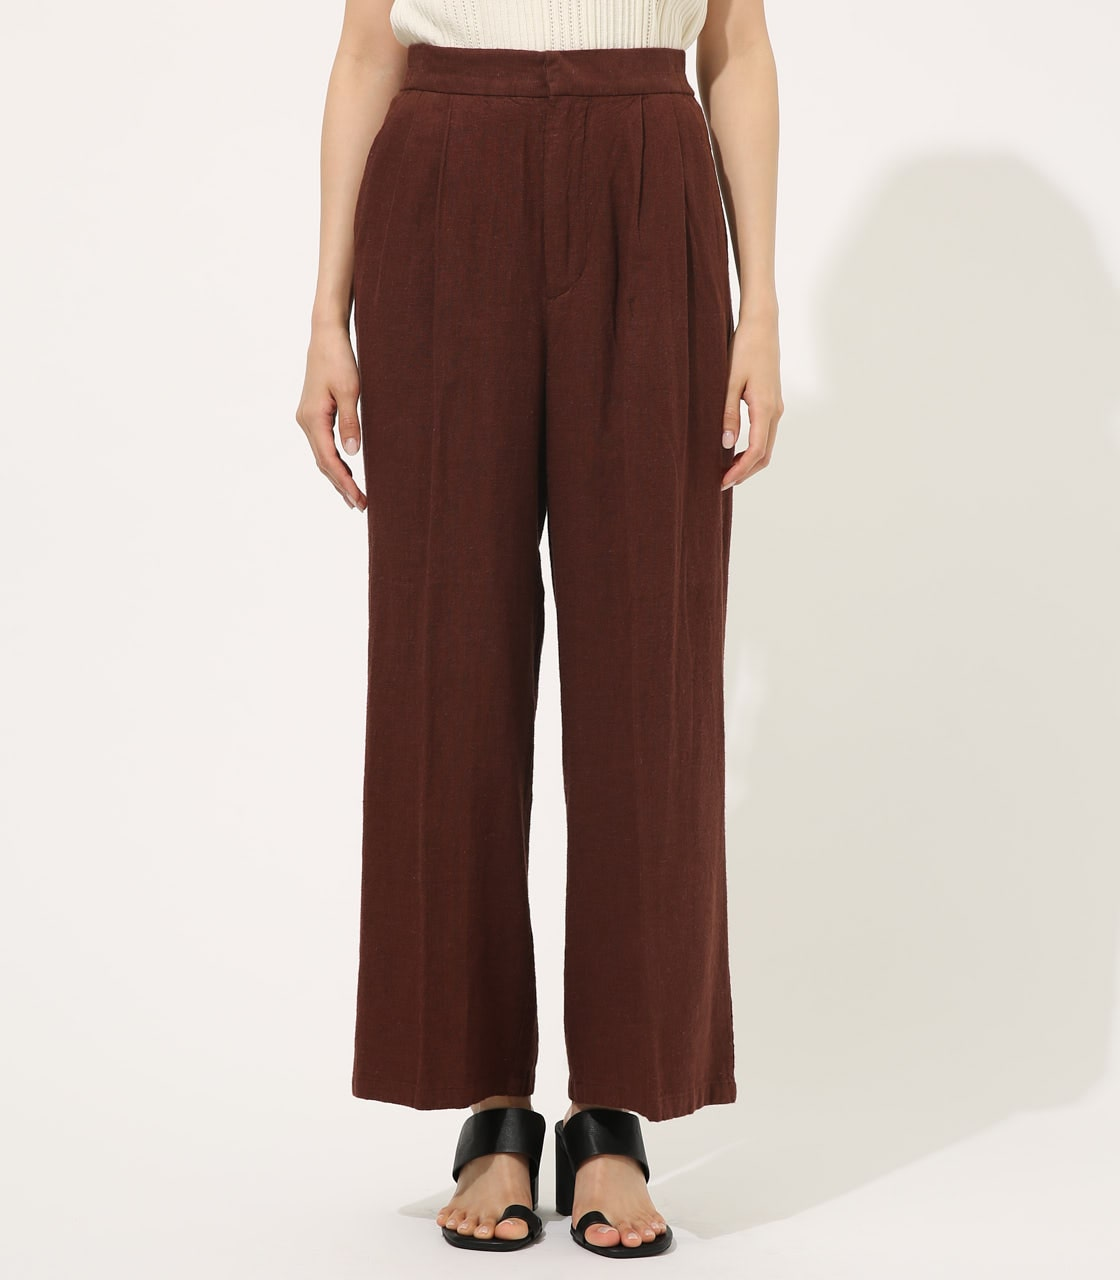 【AZUL BY MOUSSY】COTTON LINEN WIDE PANTS【MOOK50掲載 90131】 詳細画像 BRN 4